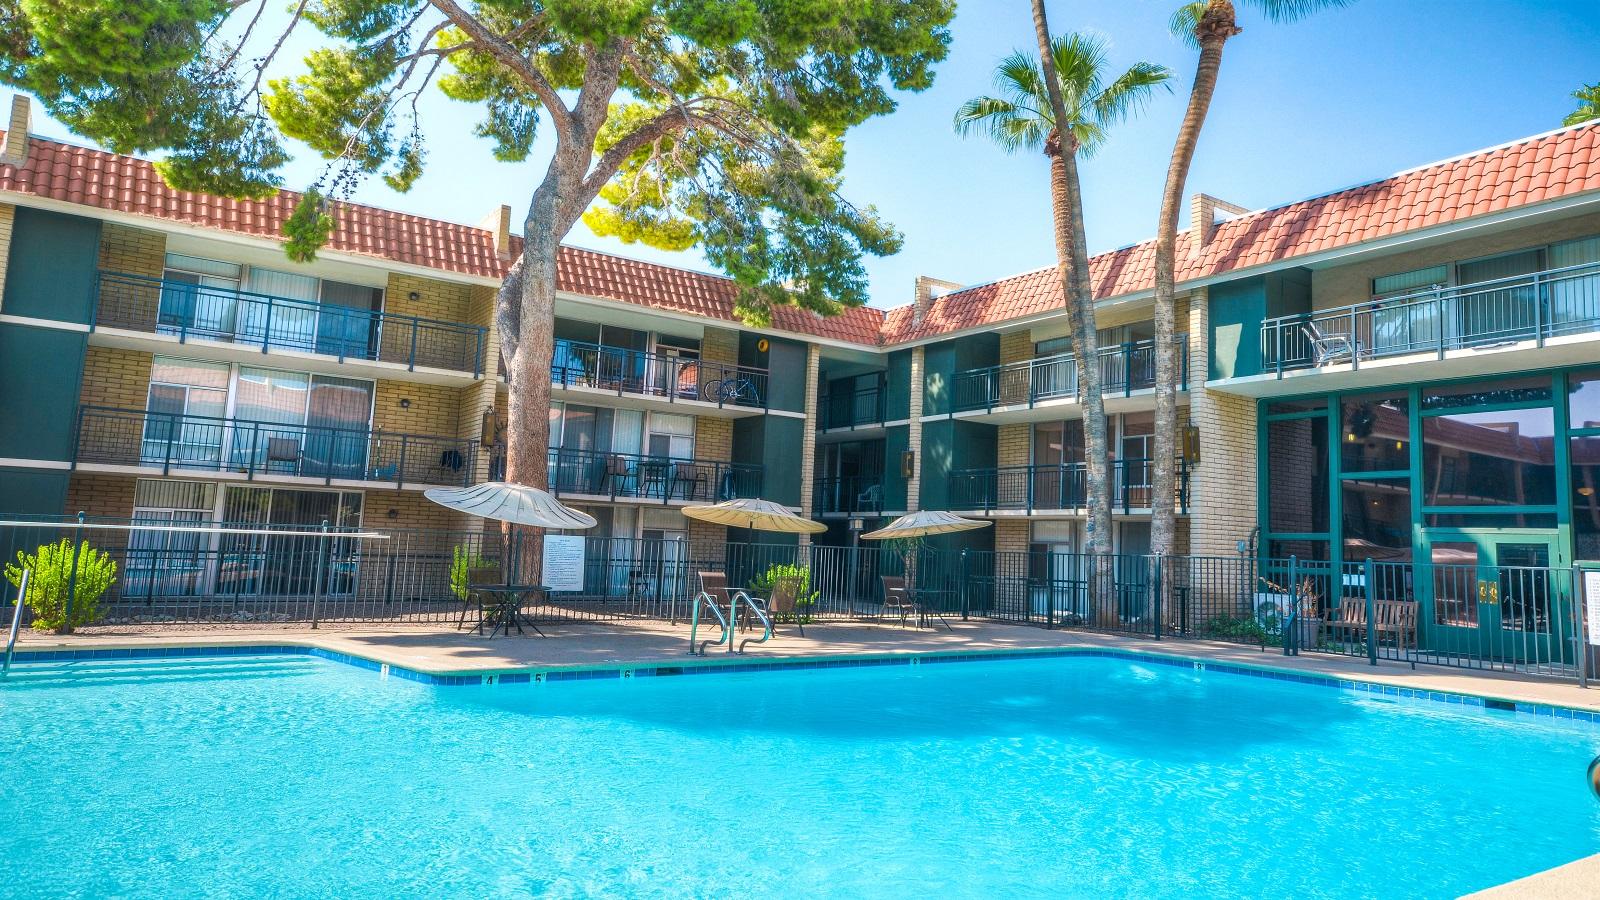 Brookfield Terrace Apartments | 6545 North 19th Avenue, Phoenix, AZ 85015 | 135 Units | Built in 1970 | $7,925,000 | $58,704 Per Unit | $97.51 Per SF